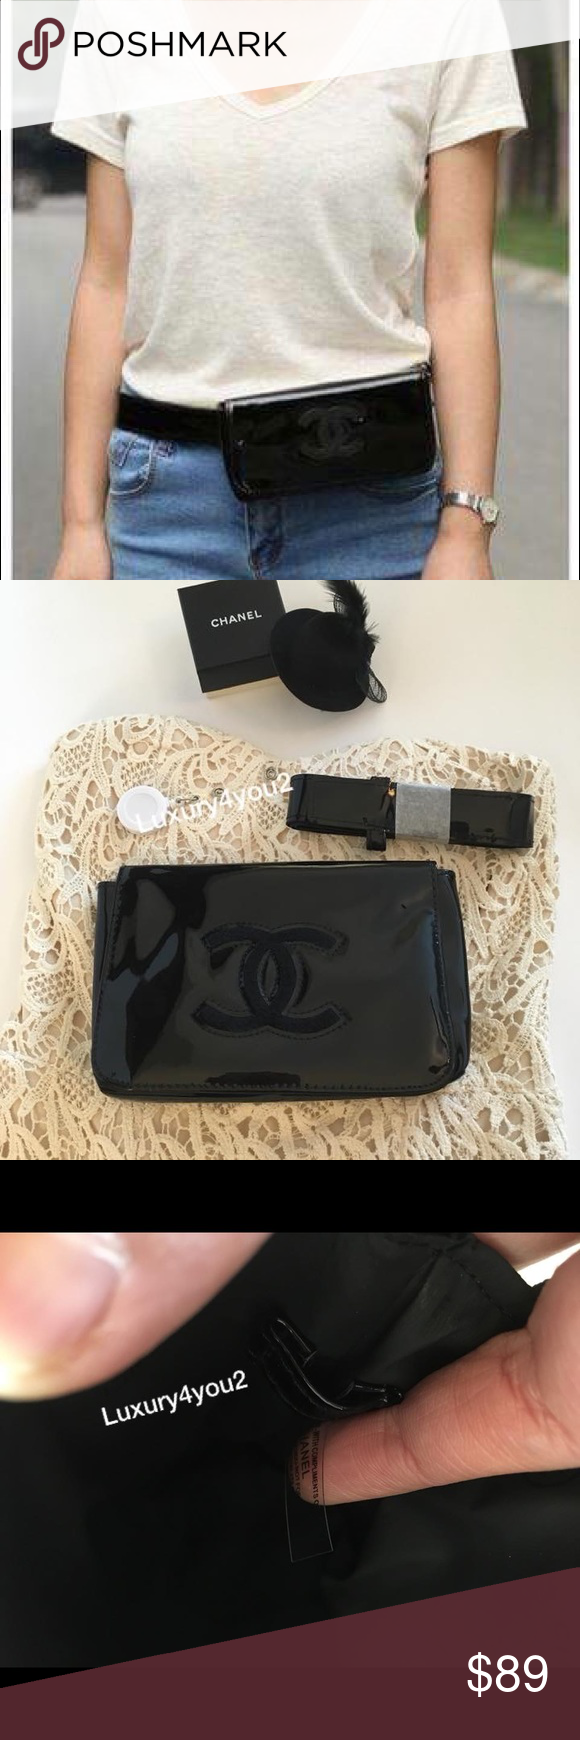 6d0f24ee8a77 Authentic Chanel VIP Gift fanny pack belt bag. Chanel VIP gift waist belt  bag.